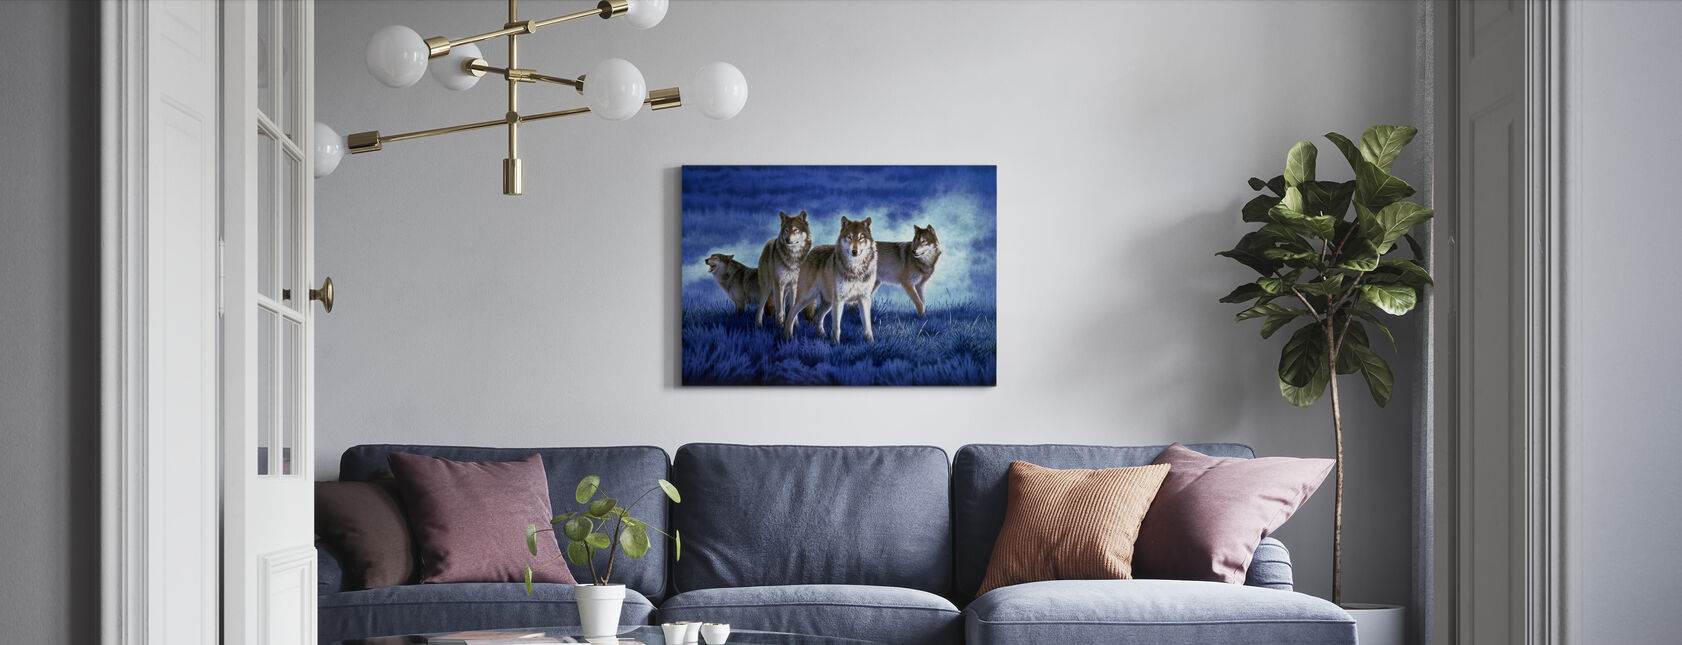 Wolves - Canvas print - Living Room